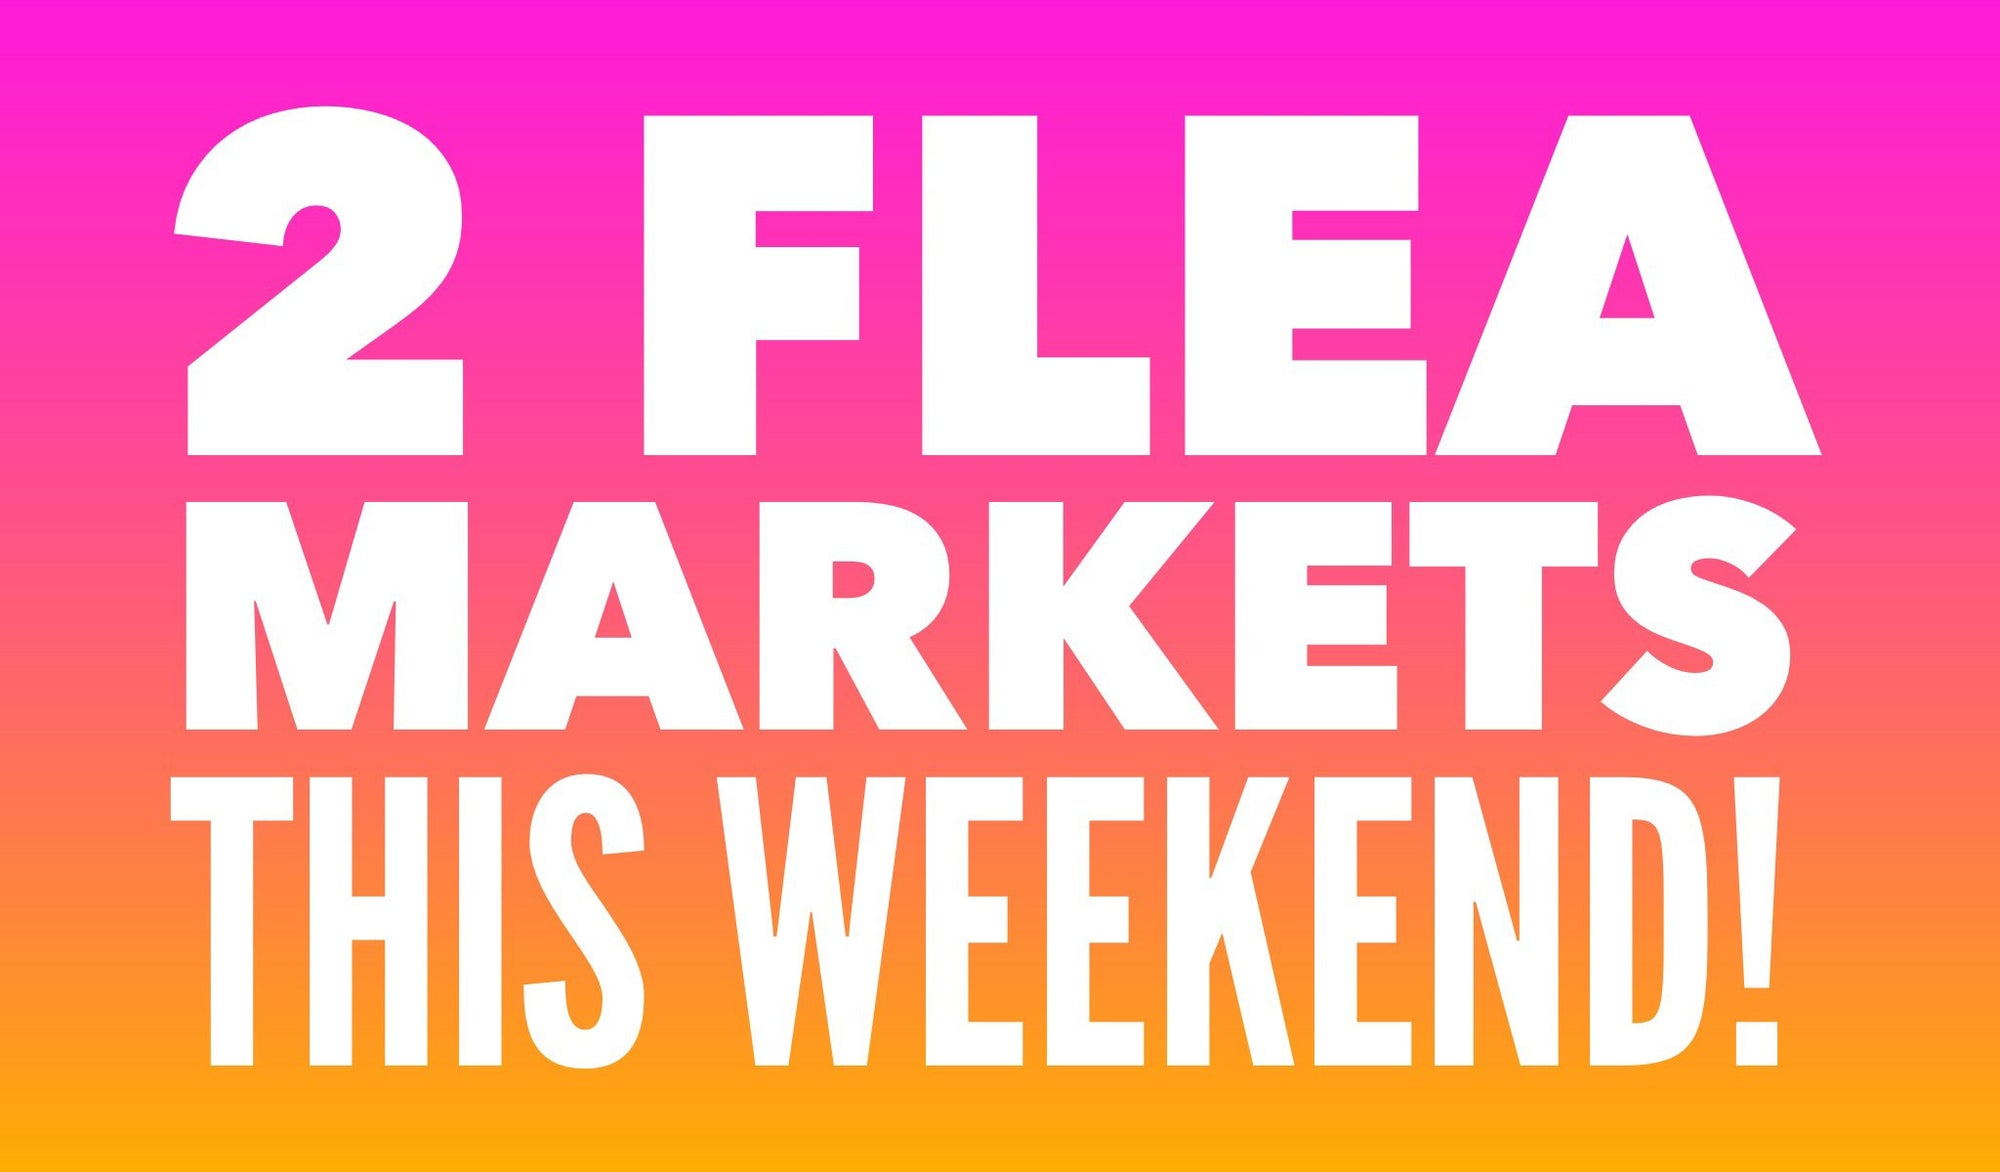 2 flea markets this weekend